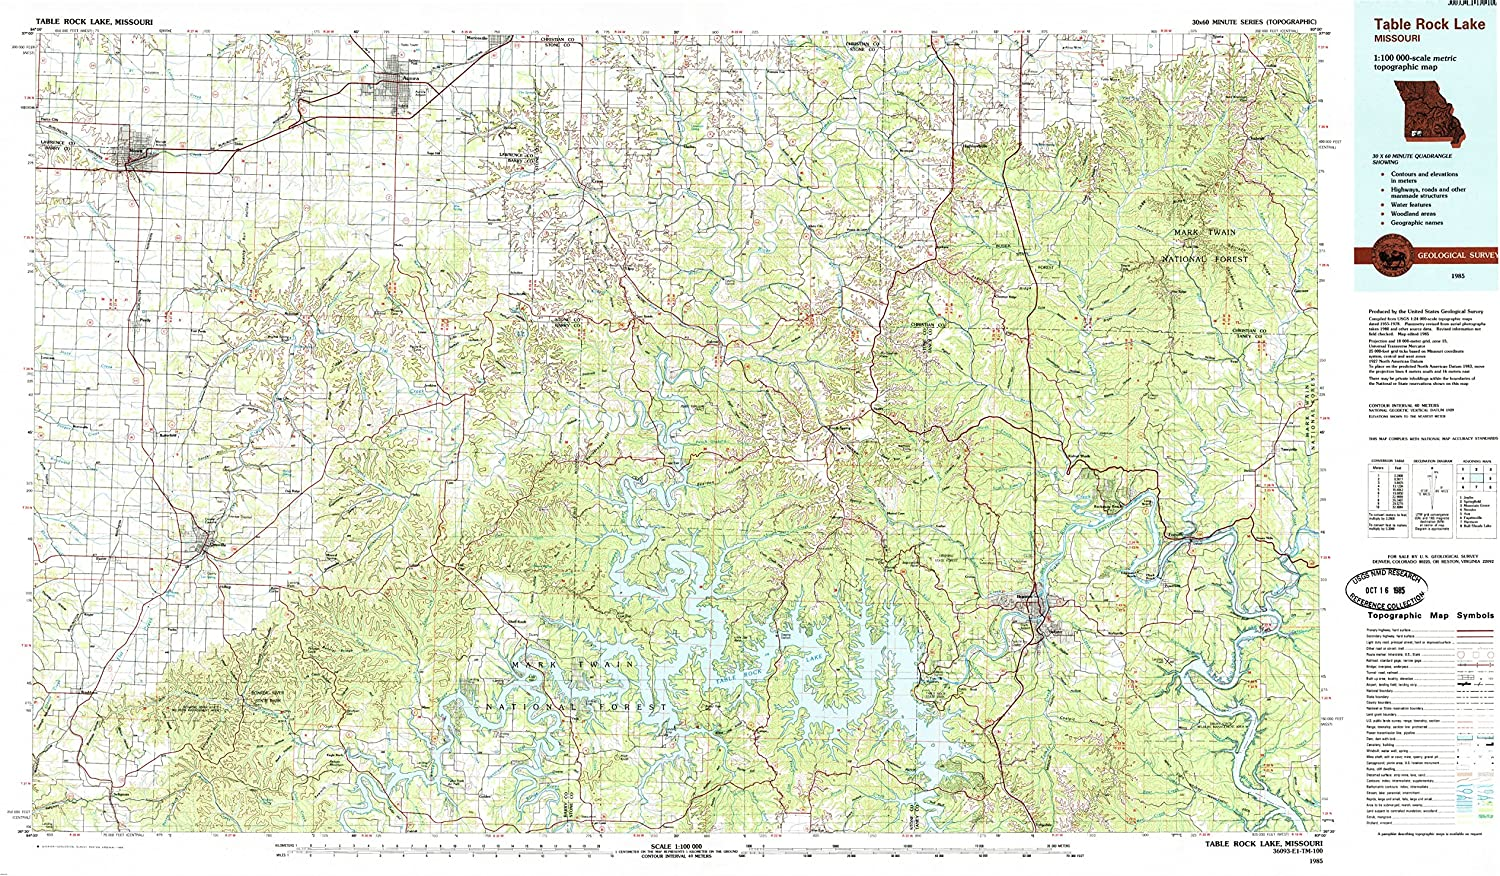 Stone County Missouri USGS Topographic Maps on CD